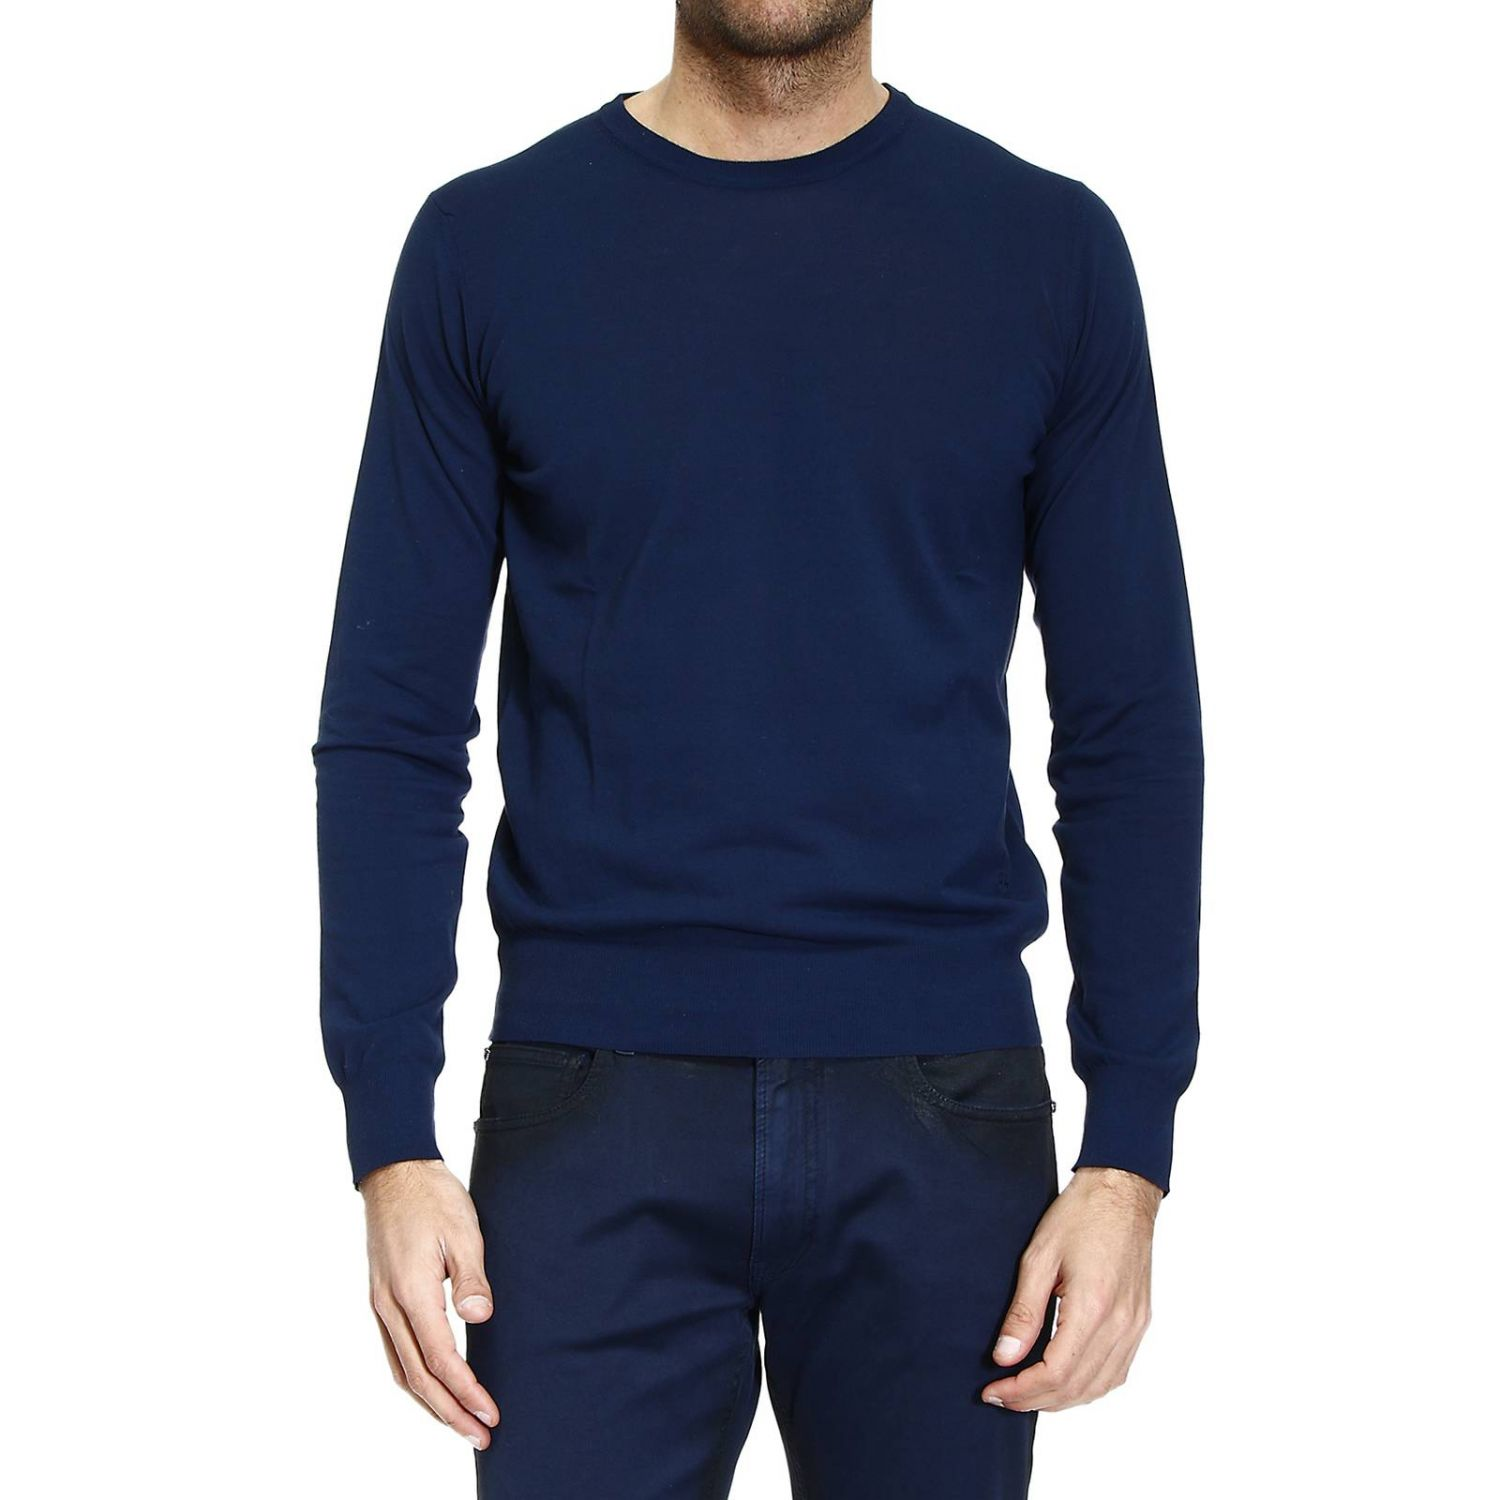 knit crew-neck cotton garment dyed or yarn dyed capo finesse 18 blue 1